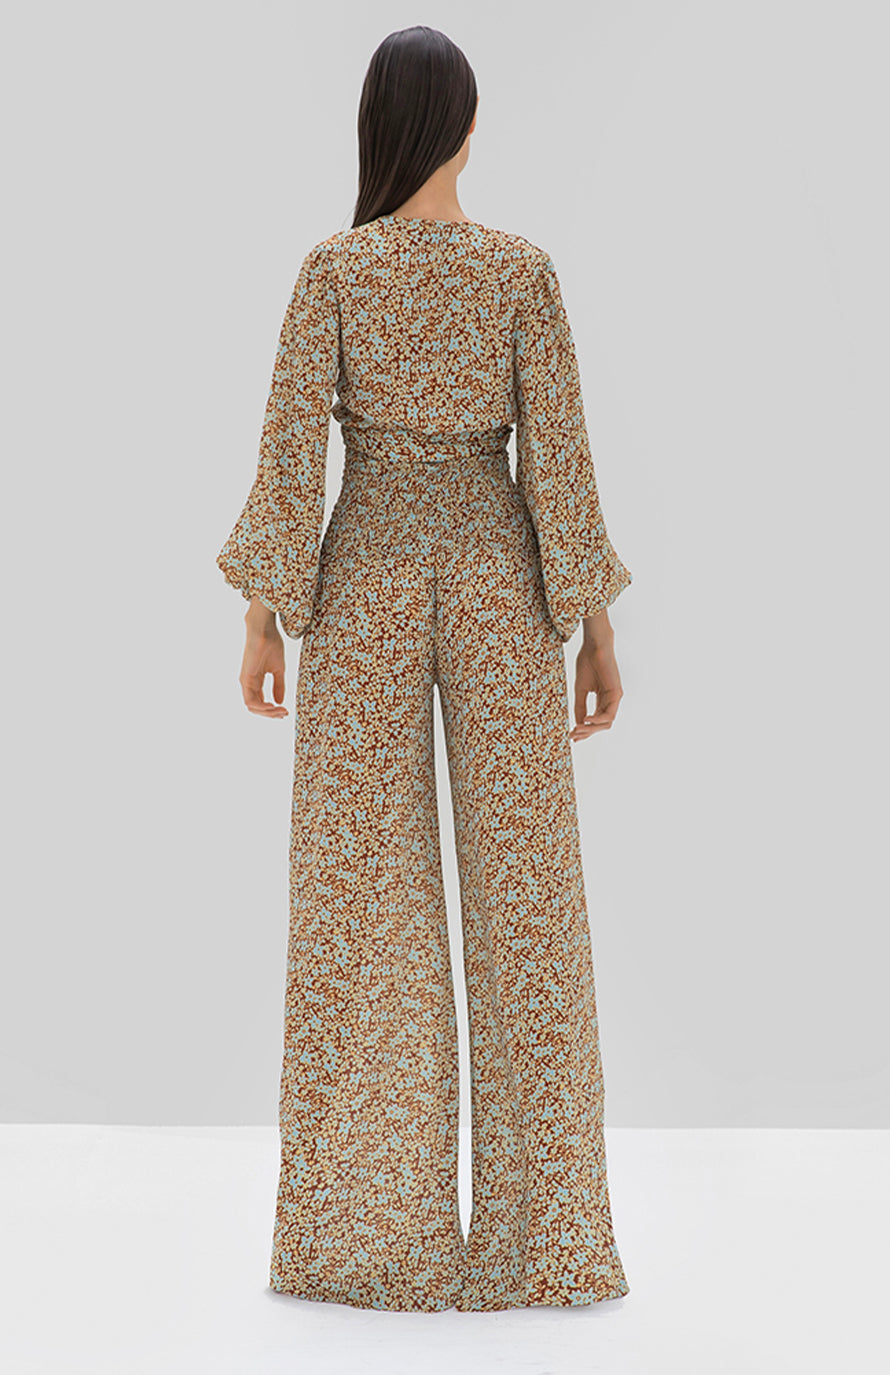 Weatherly Pant Sienna Floral - Rear View